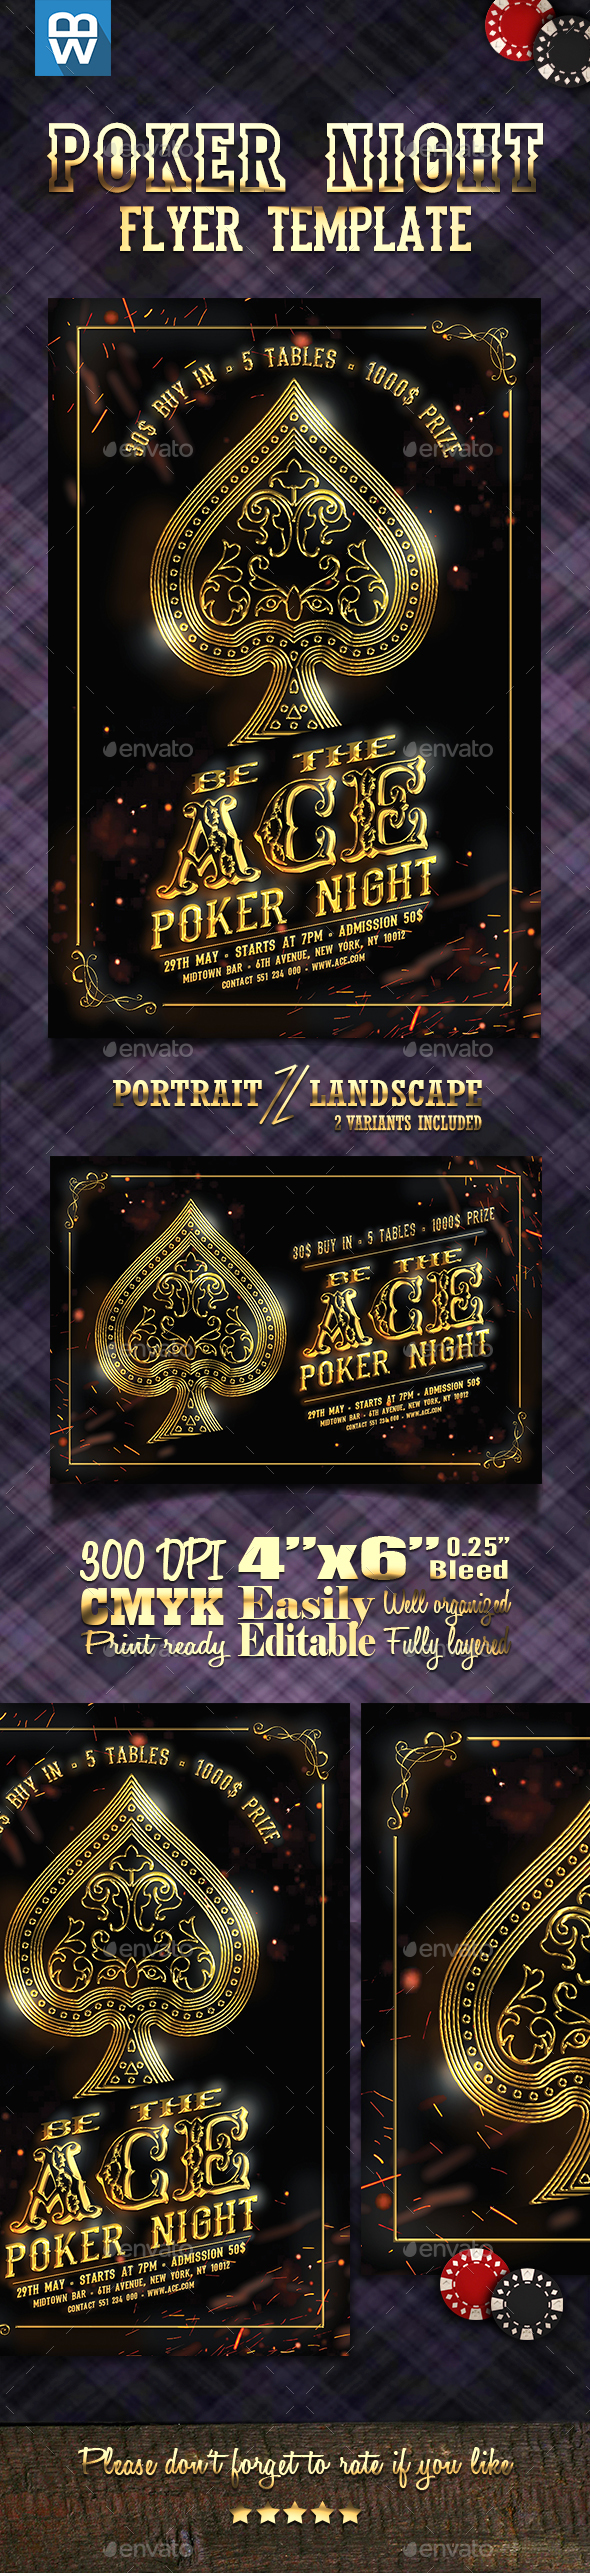 Ace - Poker Night Flyer Template